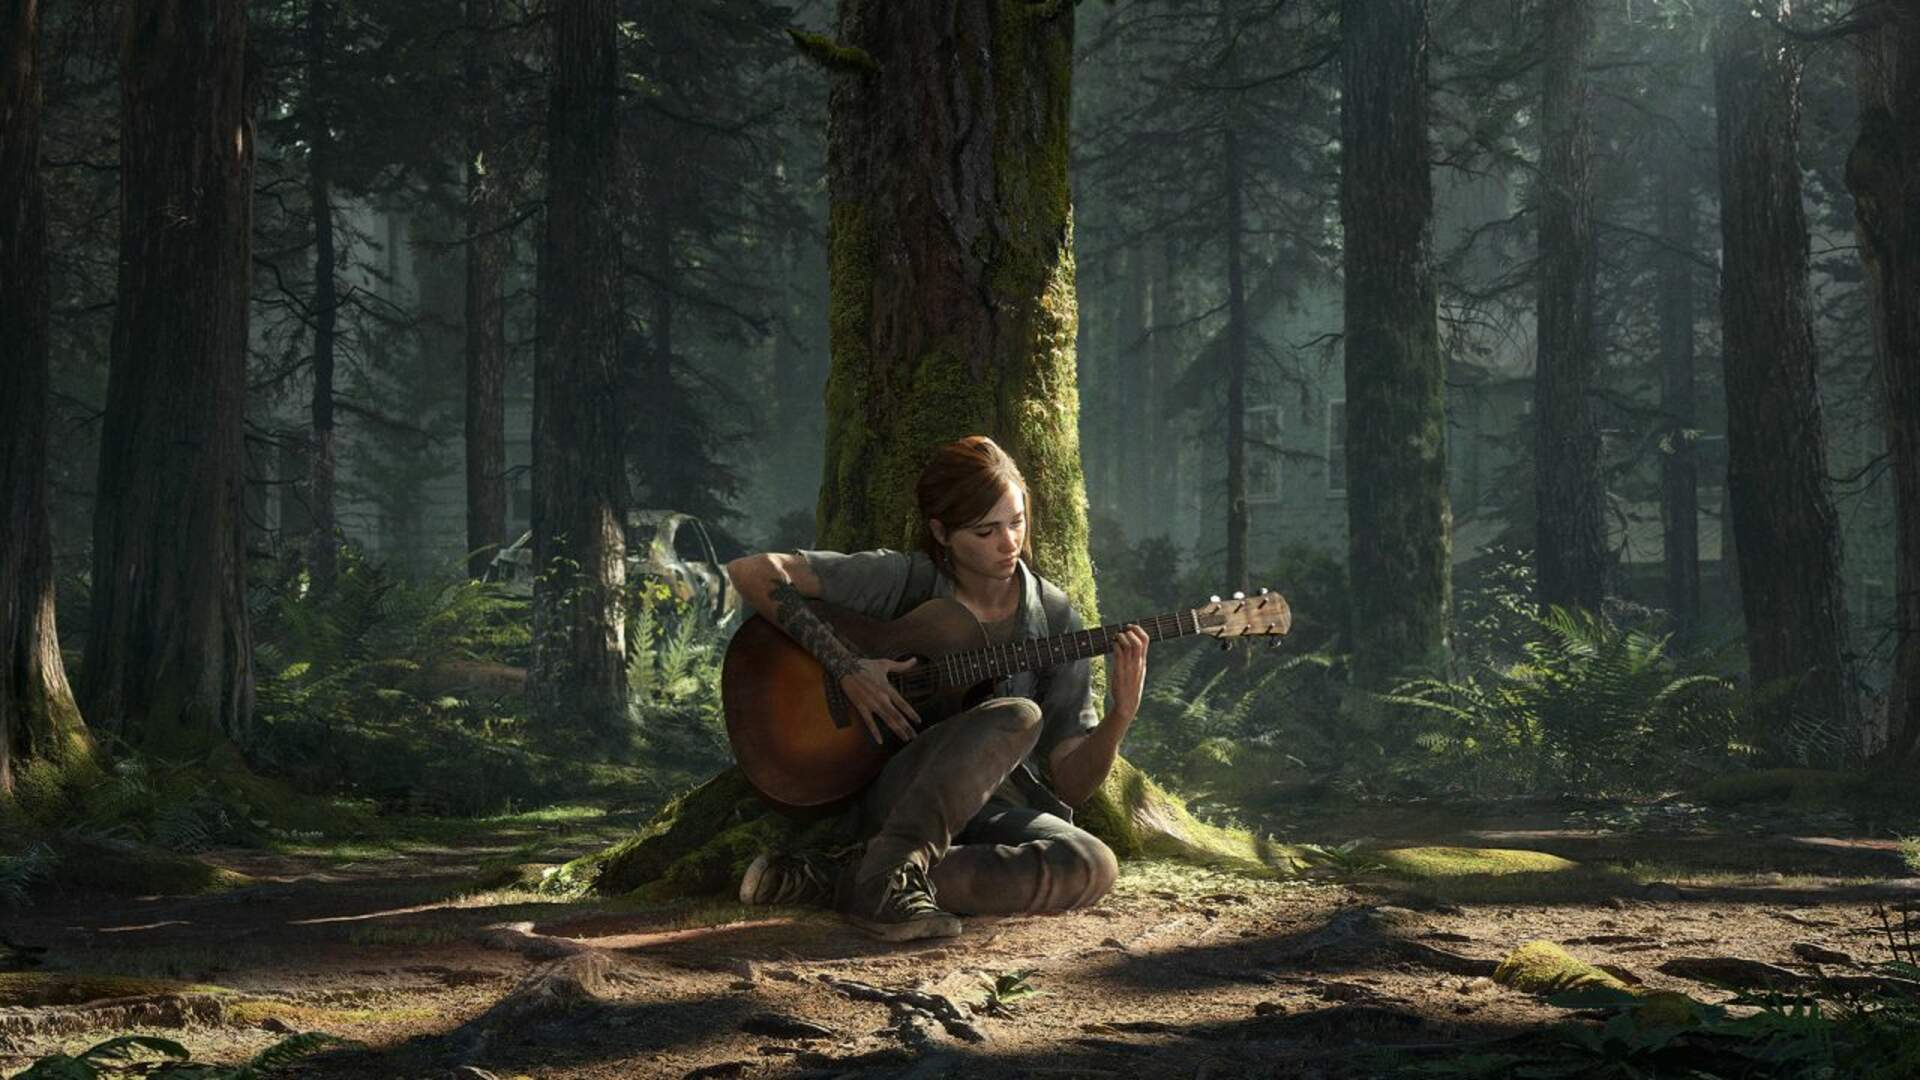 What Naughty Dog and Other Studios With Crunch Culture Have in Common